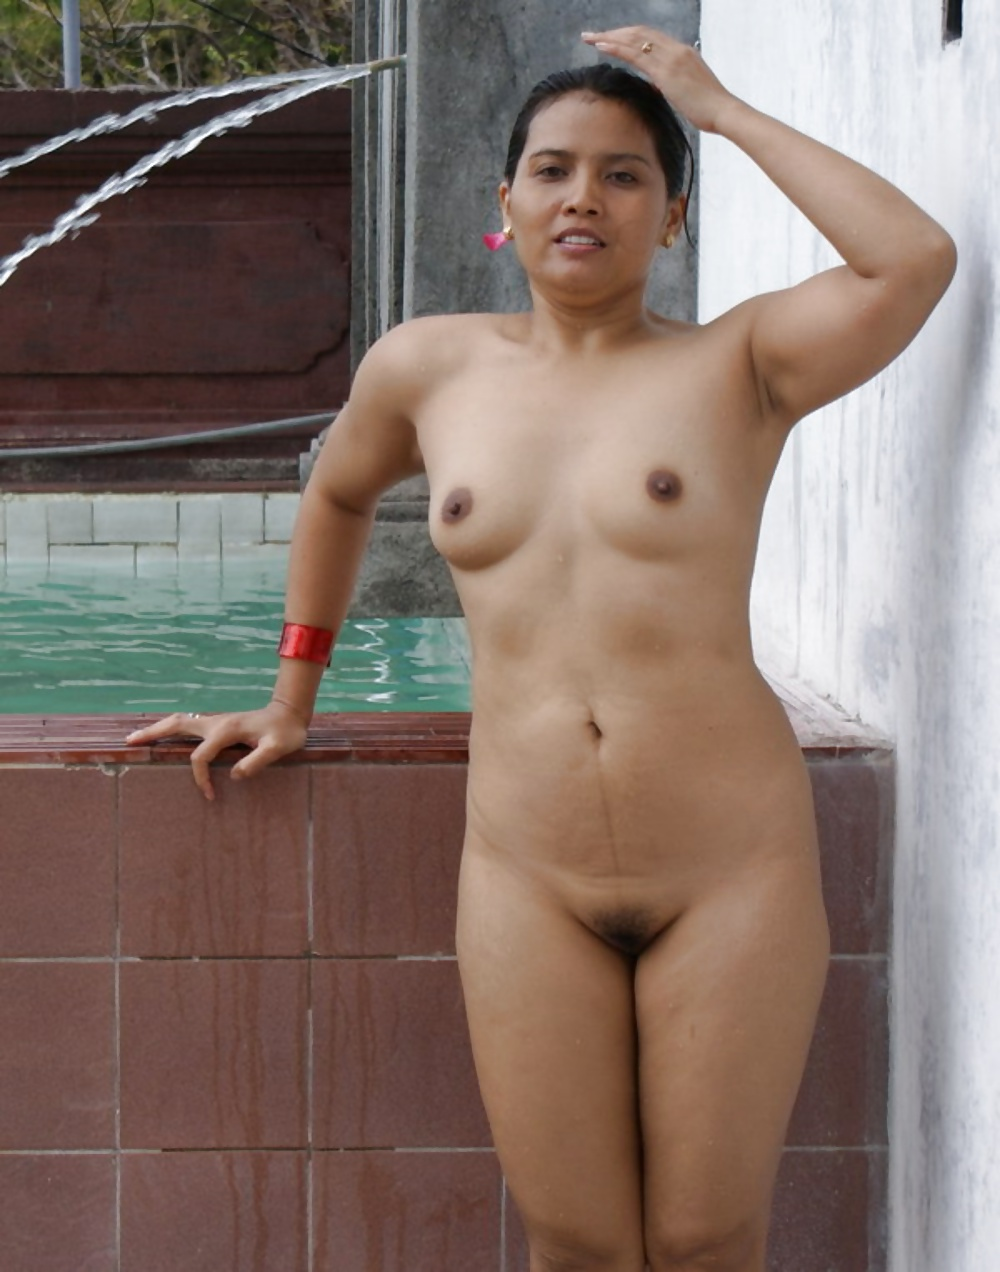 Navneet Kaur Dhillon Desi women showing off outdoors 14 Pics best porn